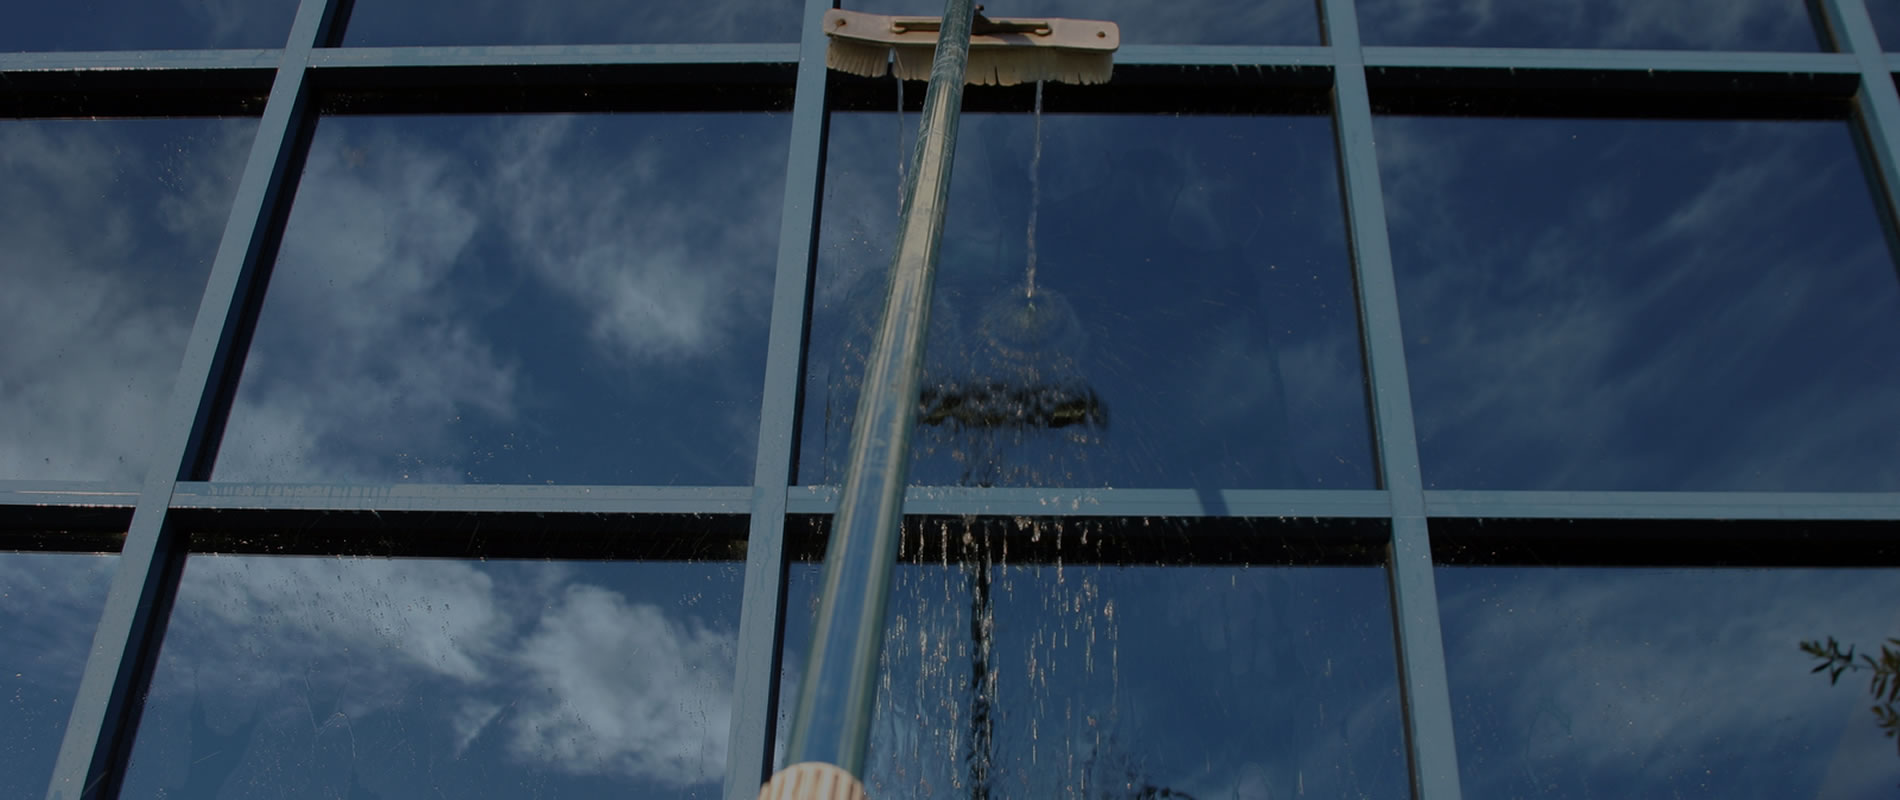 Cleaning Windows Is Easy As